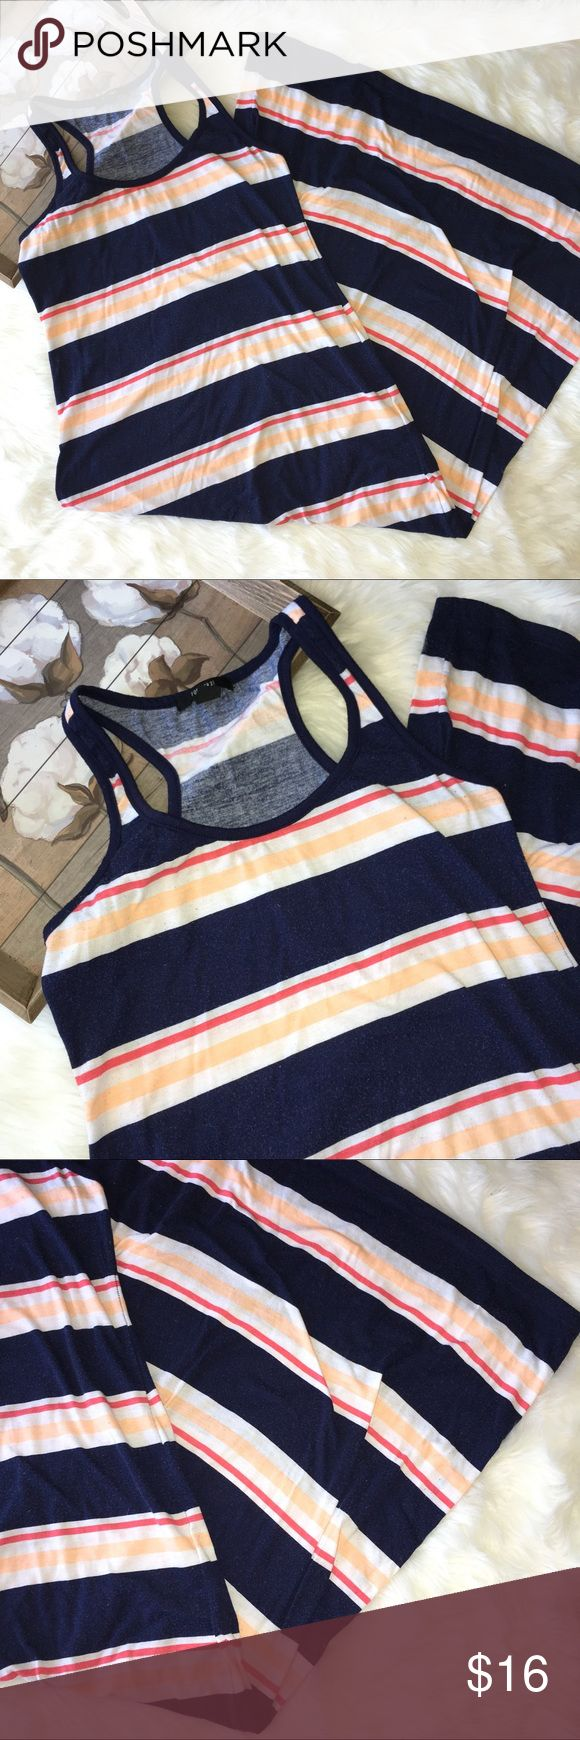 Forever 21 Striped Navy Blue & Coral Maxi Dress Super chic and stylish navy blue striped Maxi dress by Forever 21 in good preowned condition. Size large. Very soft and comfy! Easy to wear and style. Forever 21 Dresses Maxi